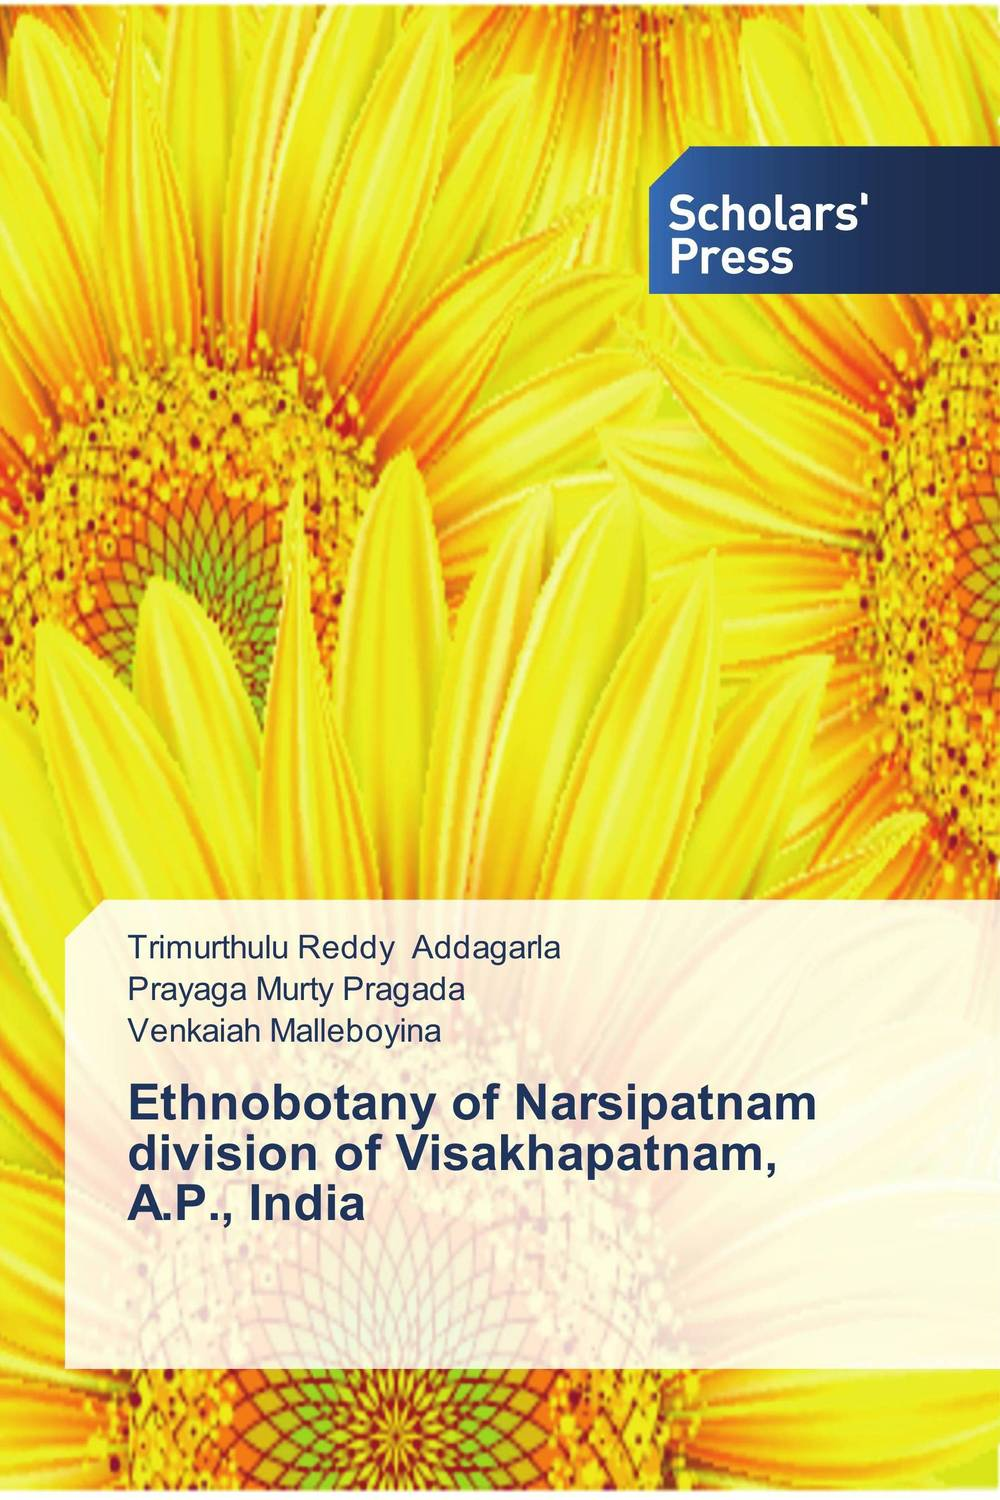 Ethnobotany of Narsipatnam division of Visakhapatnam, A.P., India ethnomedicinal uses of animals in india with reference to asthma